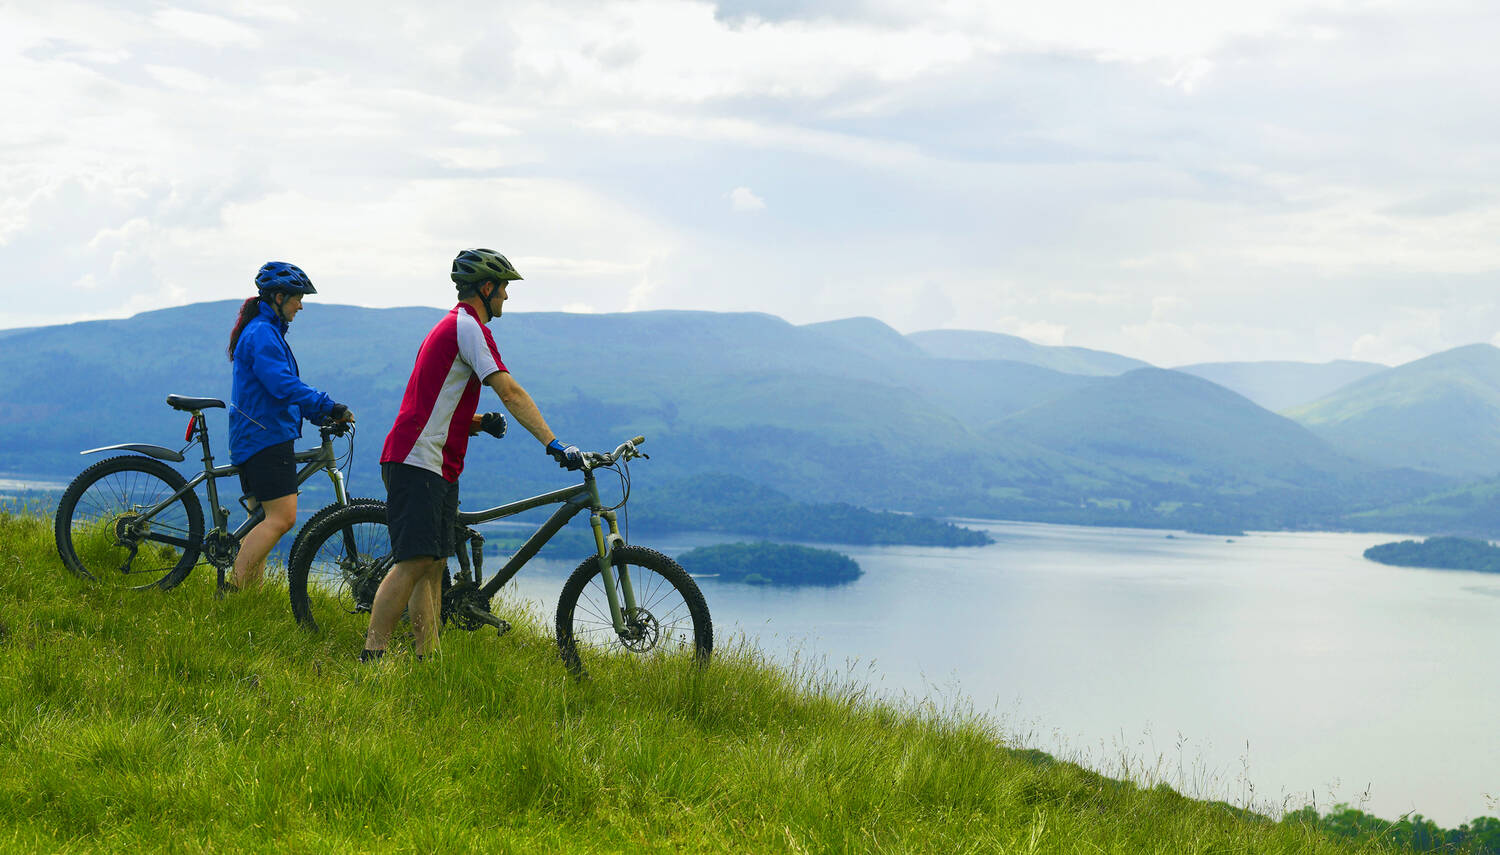 Couple cycling on a hill with view across mountains and loch